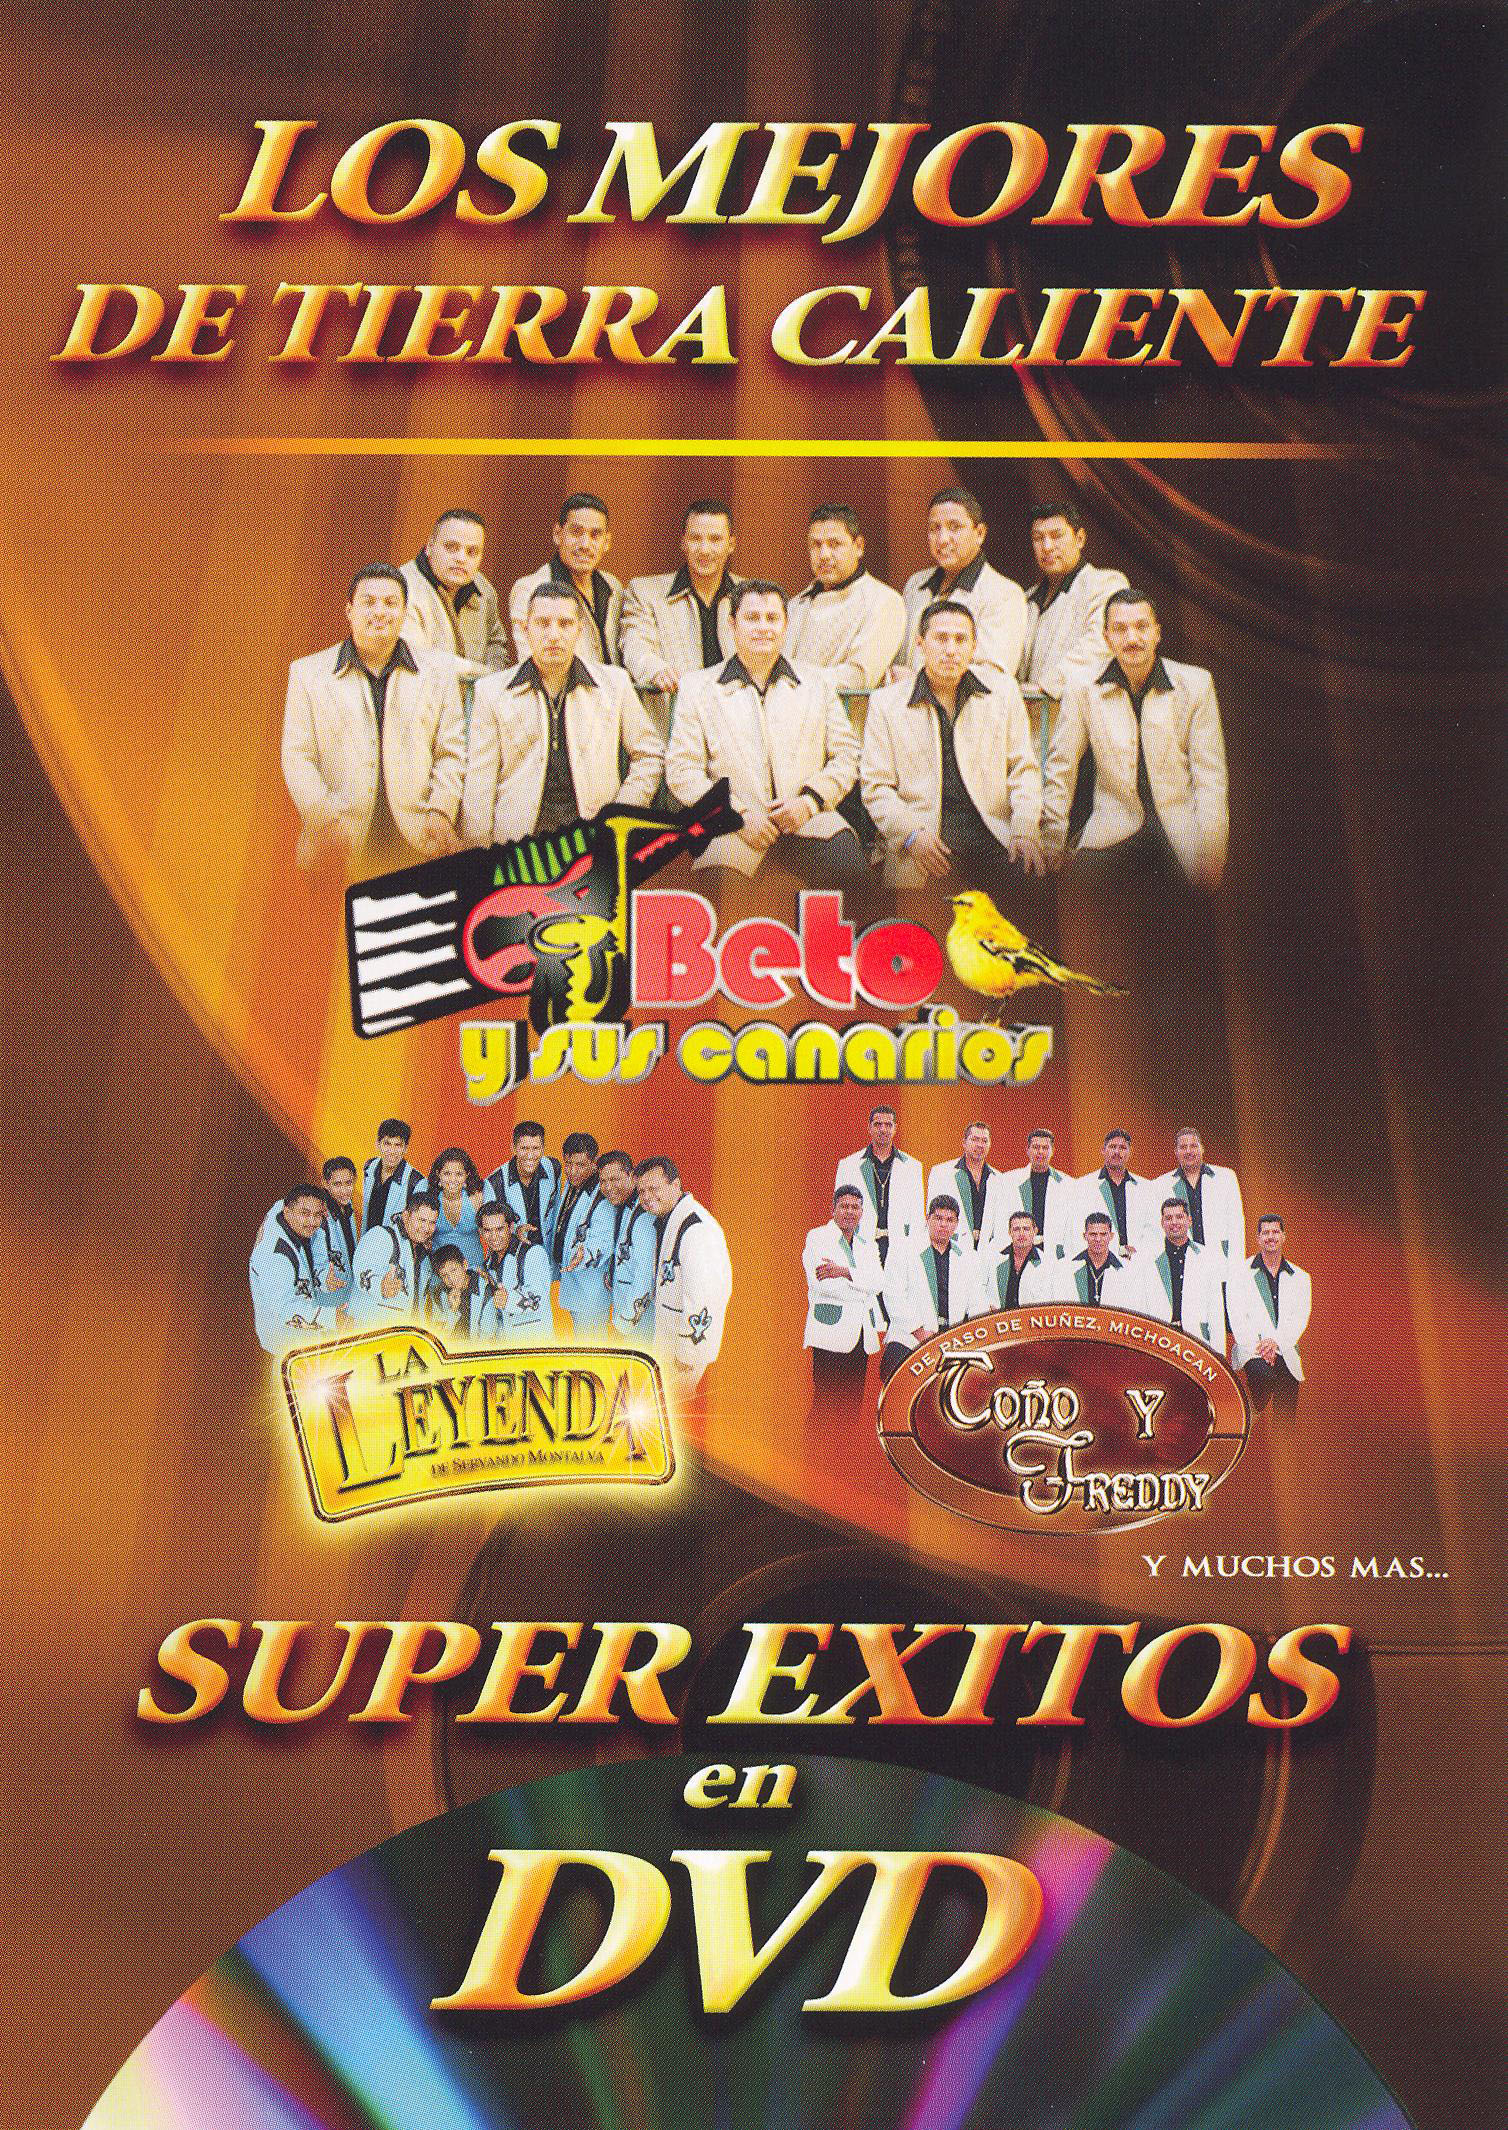 Super Exitos en DVD: Tierra Caliente